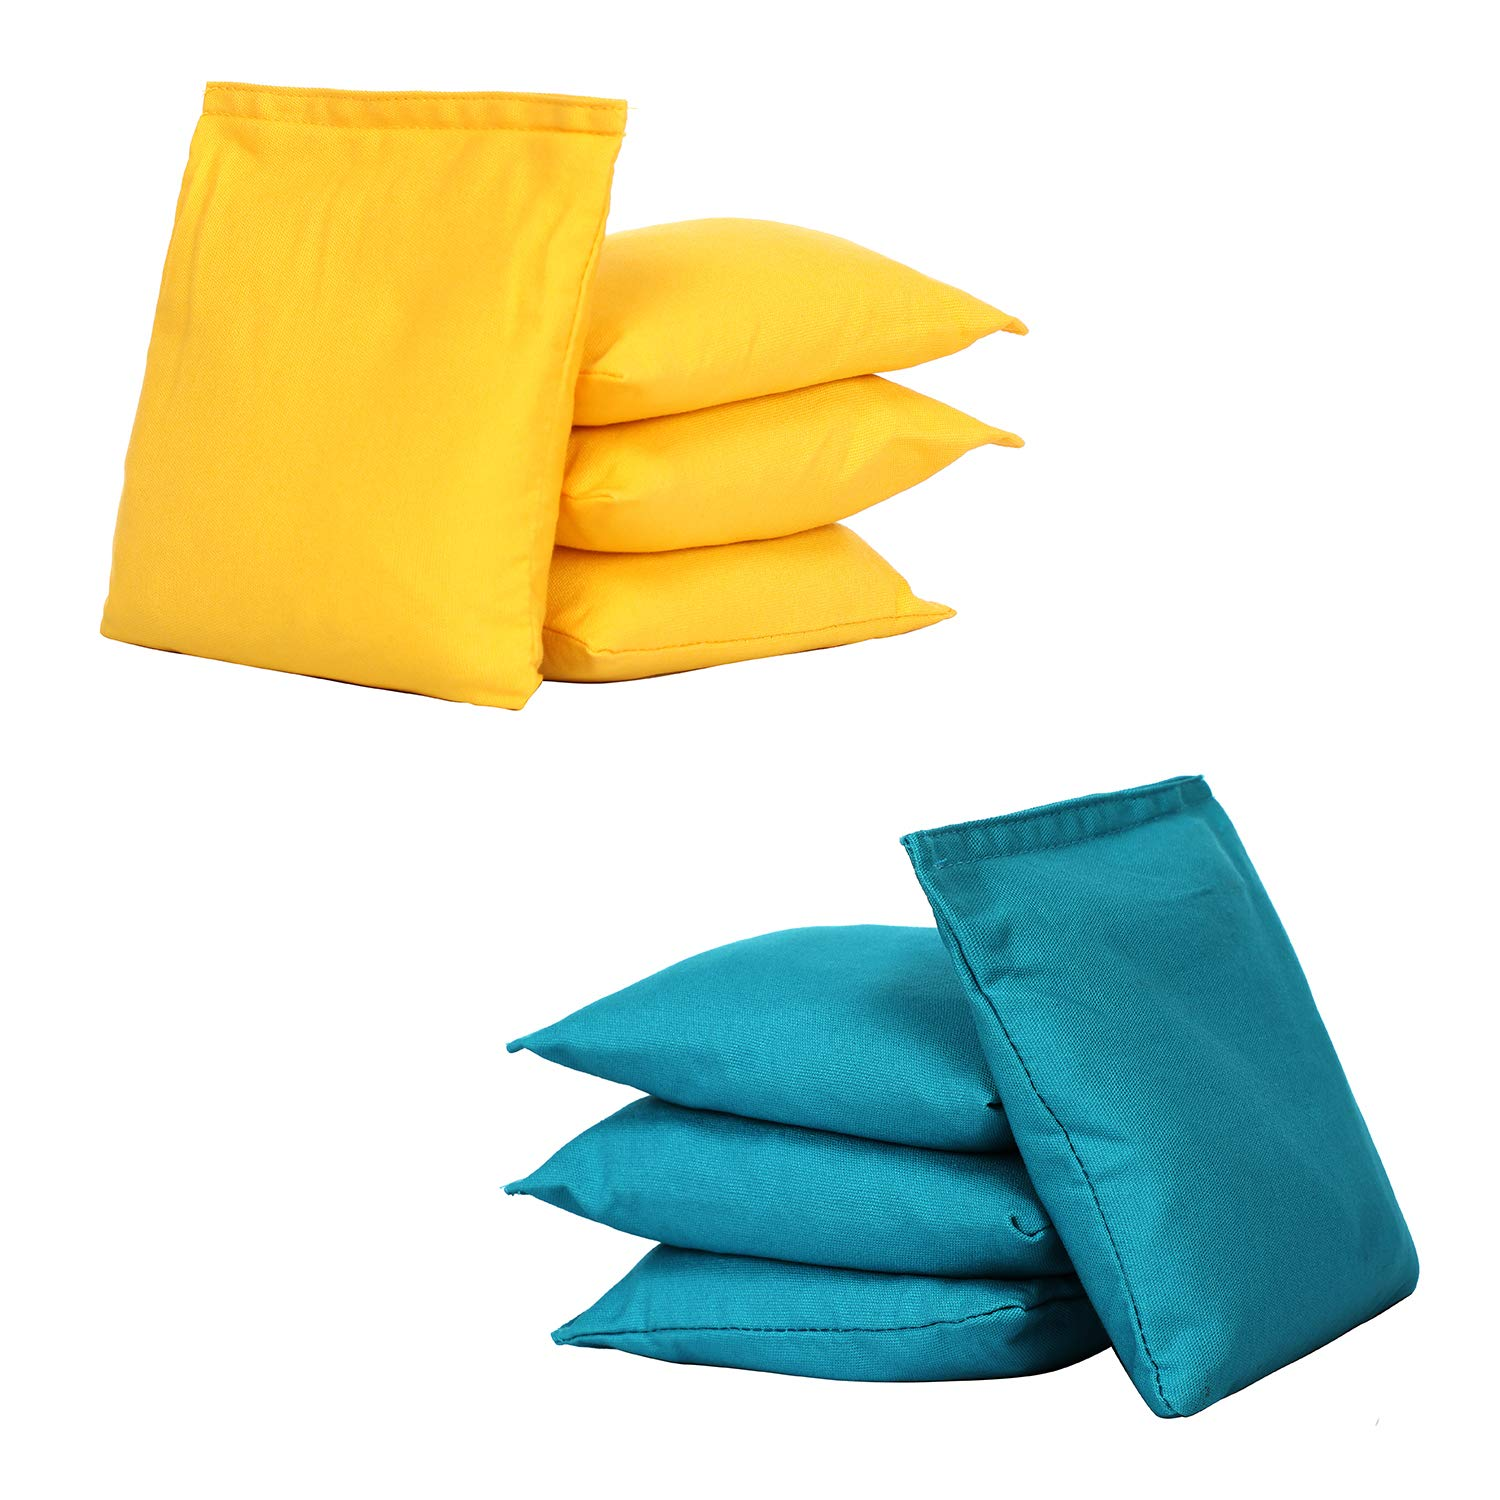 UKASE Durable Corn Hole Bags Set of 8 Regulation Cornhole Bean Bags Light Blue and Yellow